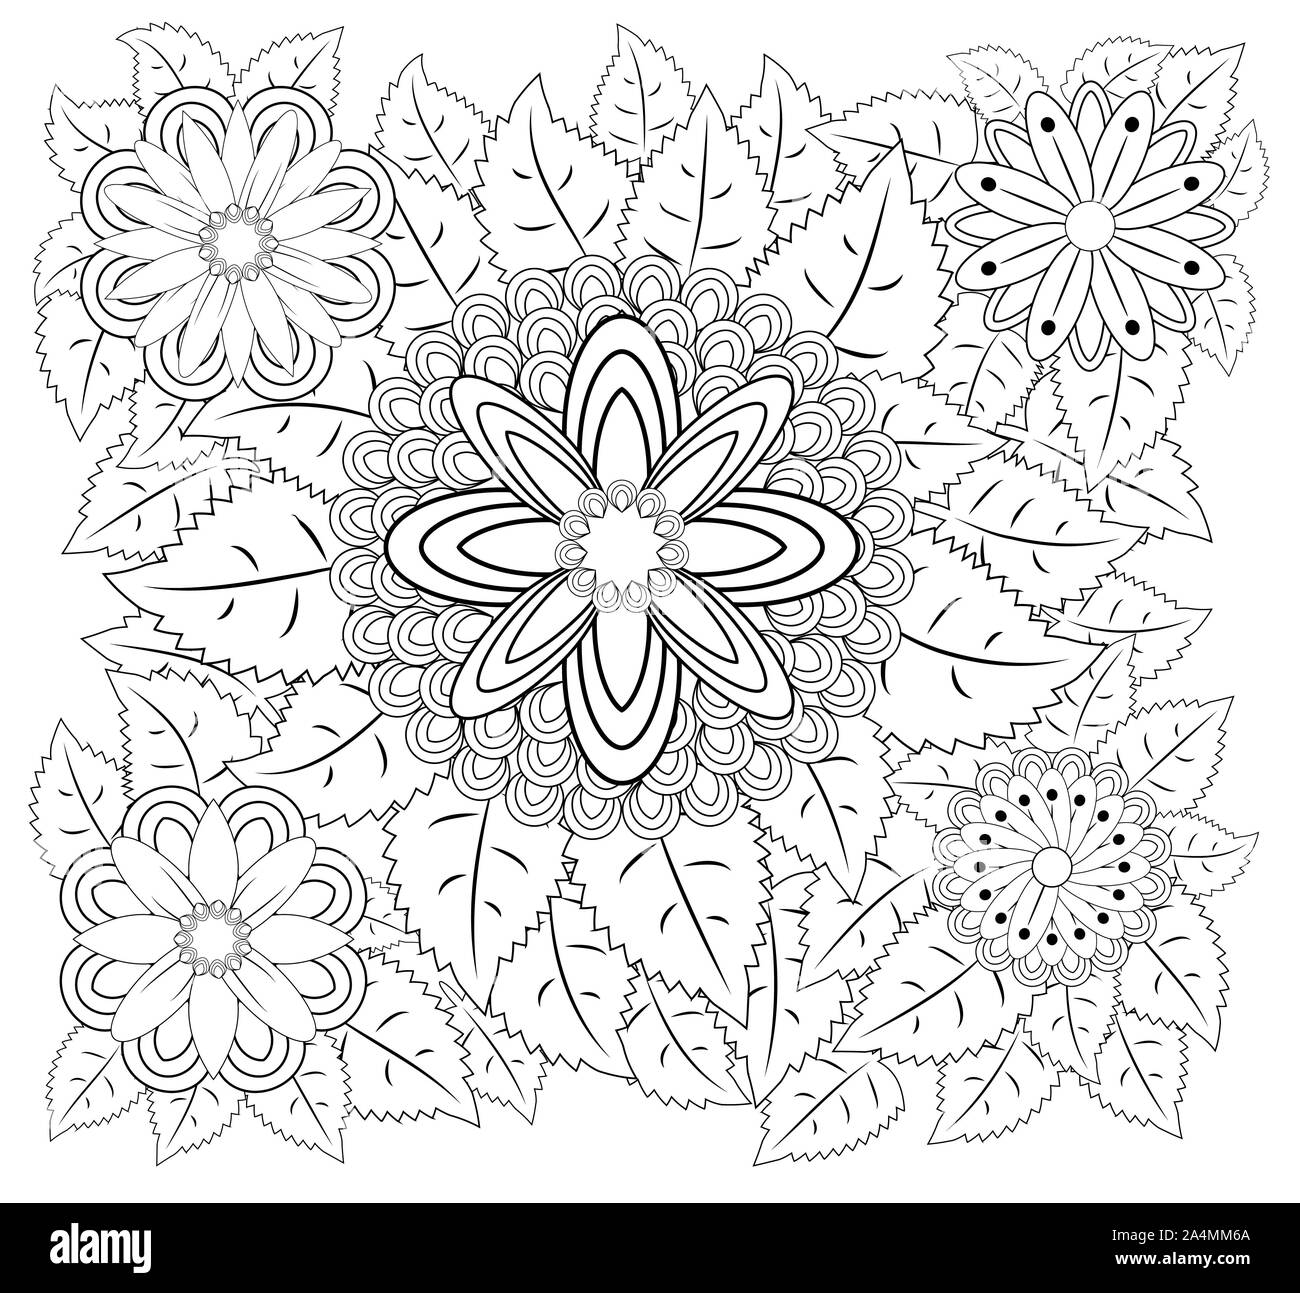 Coloring book for adult and older children. Coloring page with vintage flowers pattern. Stock Photo